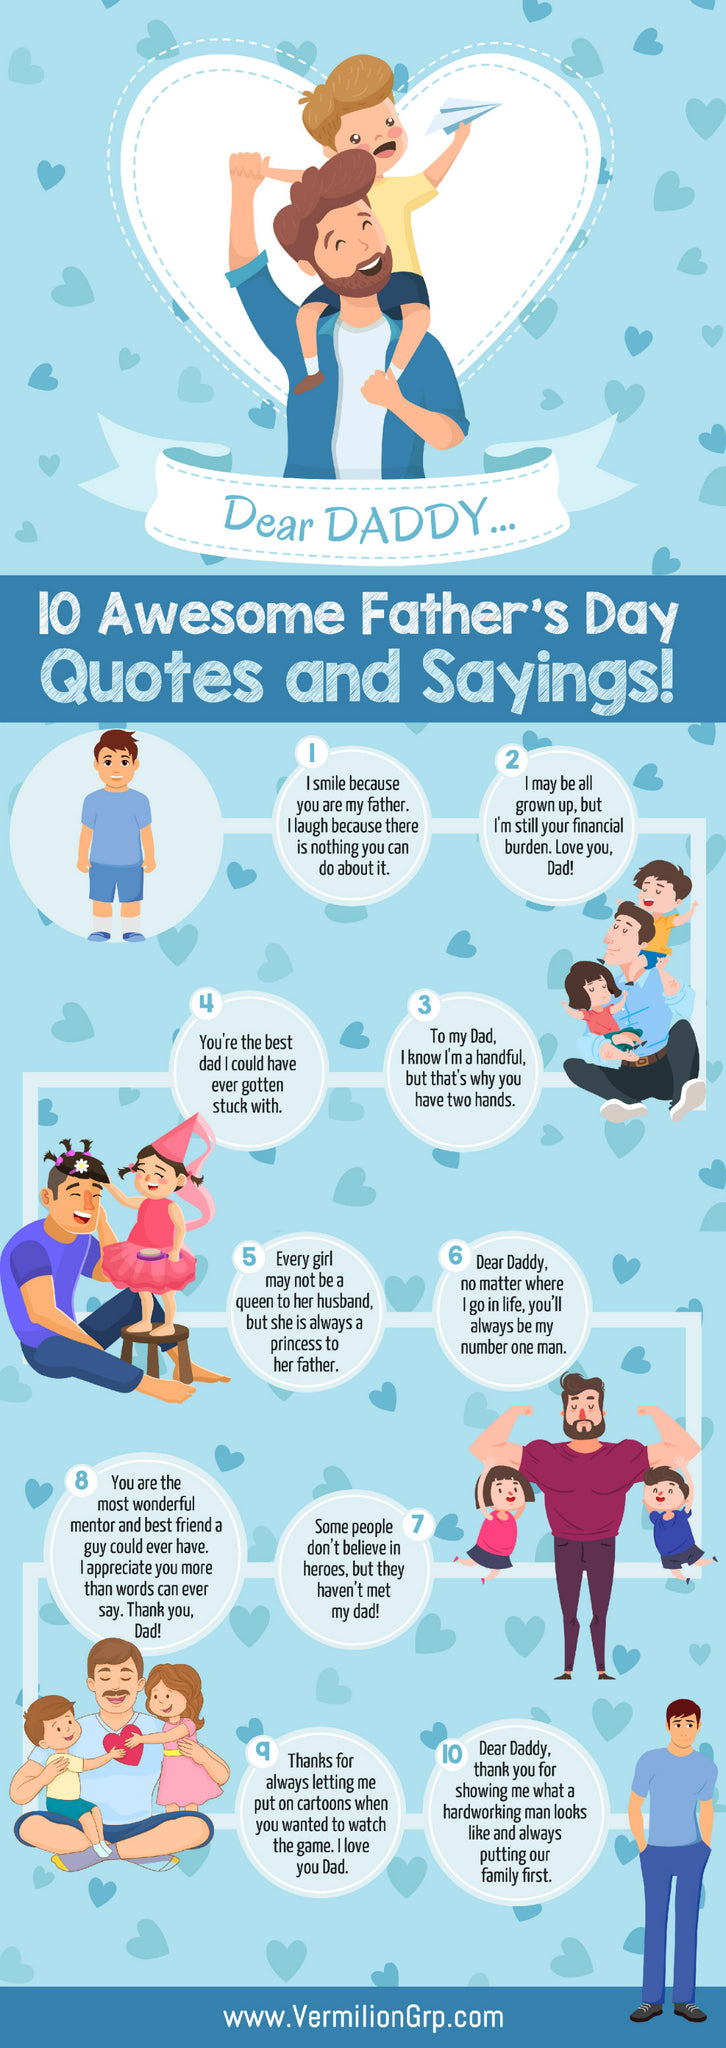 Best Father's Day Sayings